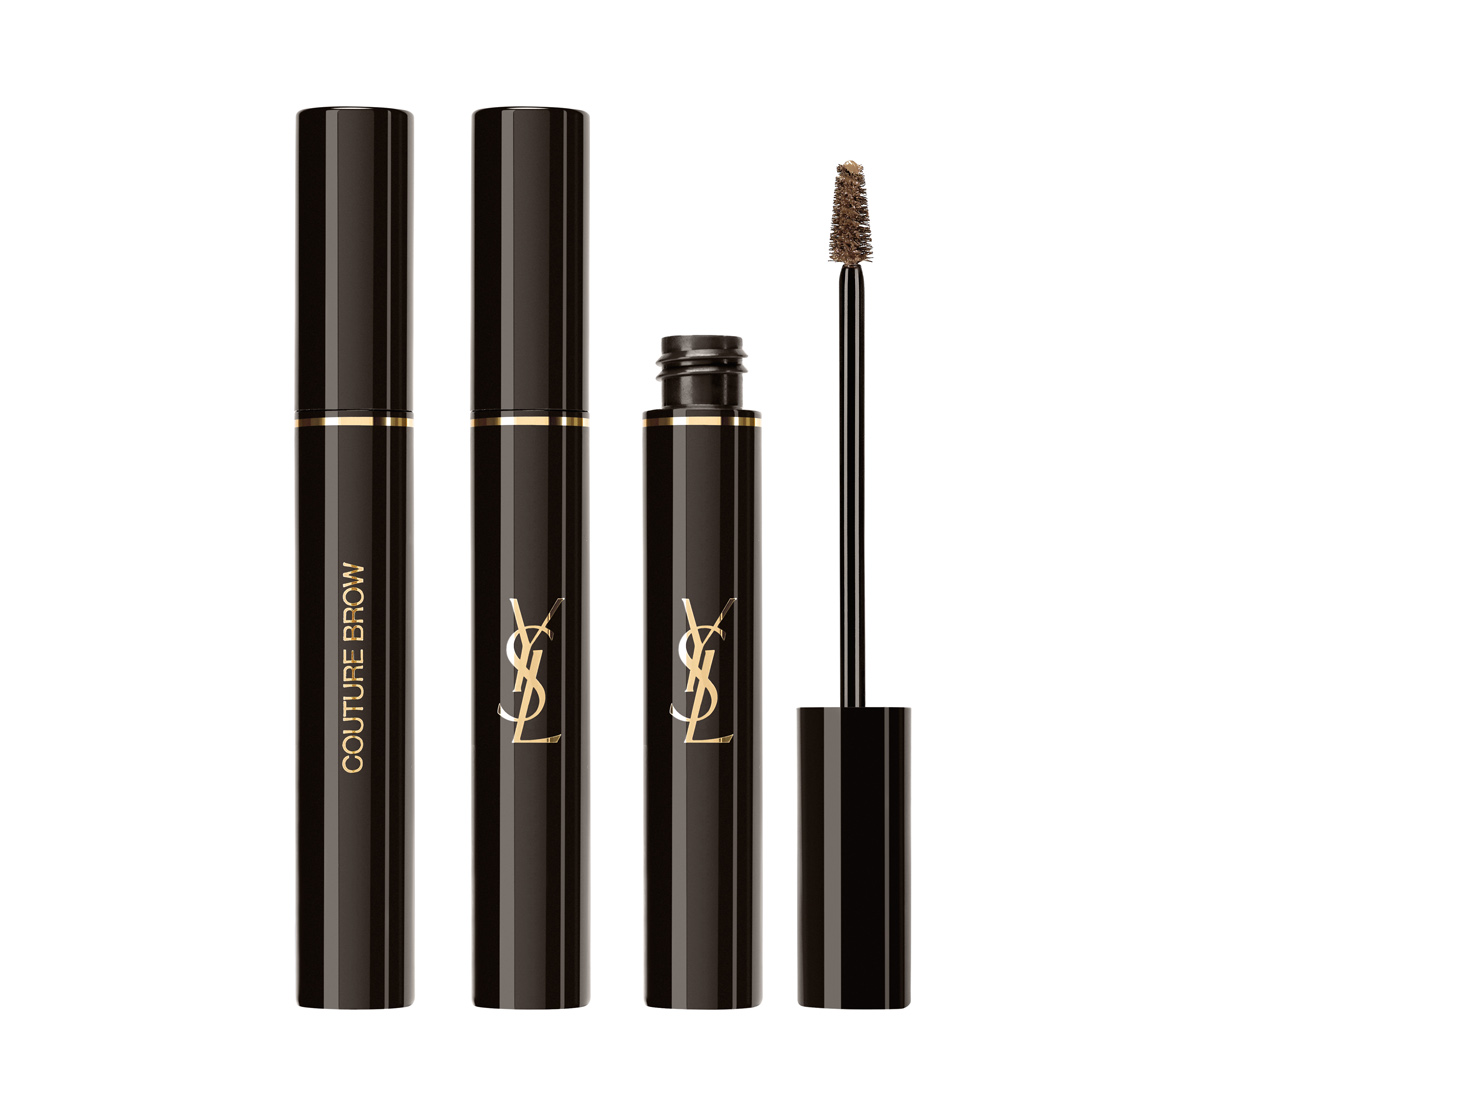 YSL, AUTOMNE_FALL_15_MASCARA_COUTURE_BROW_n_2_Ysl